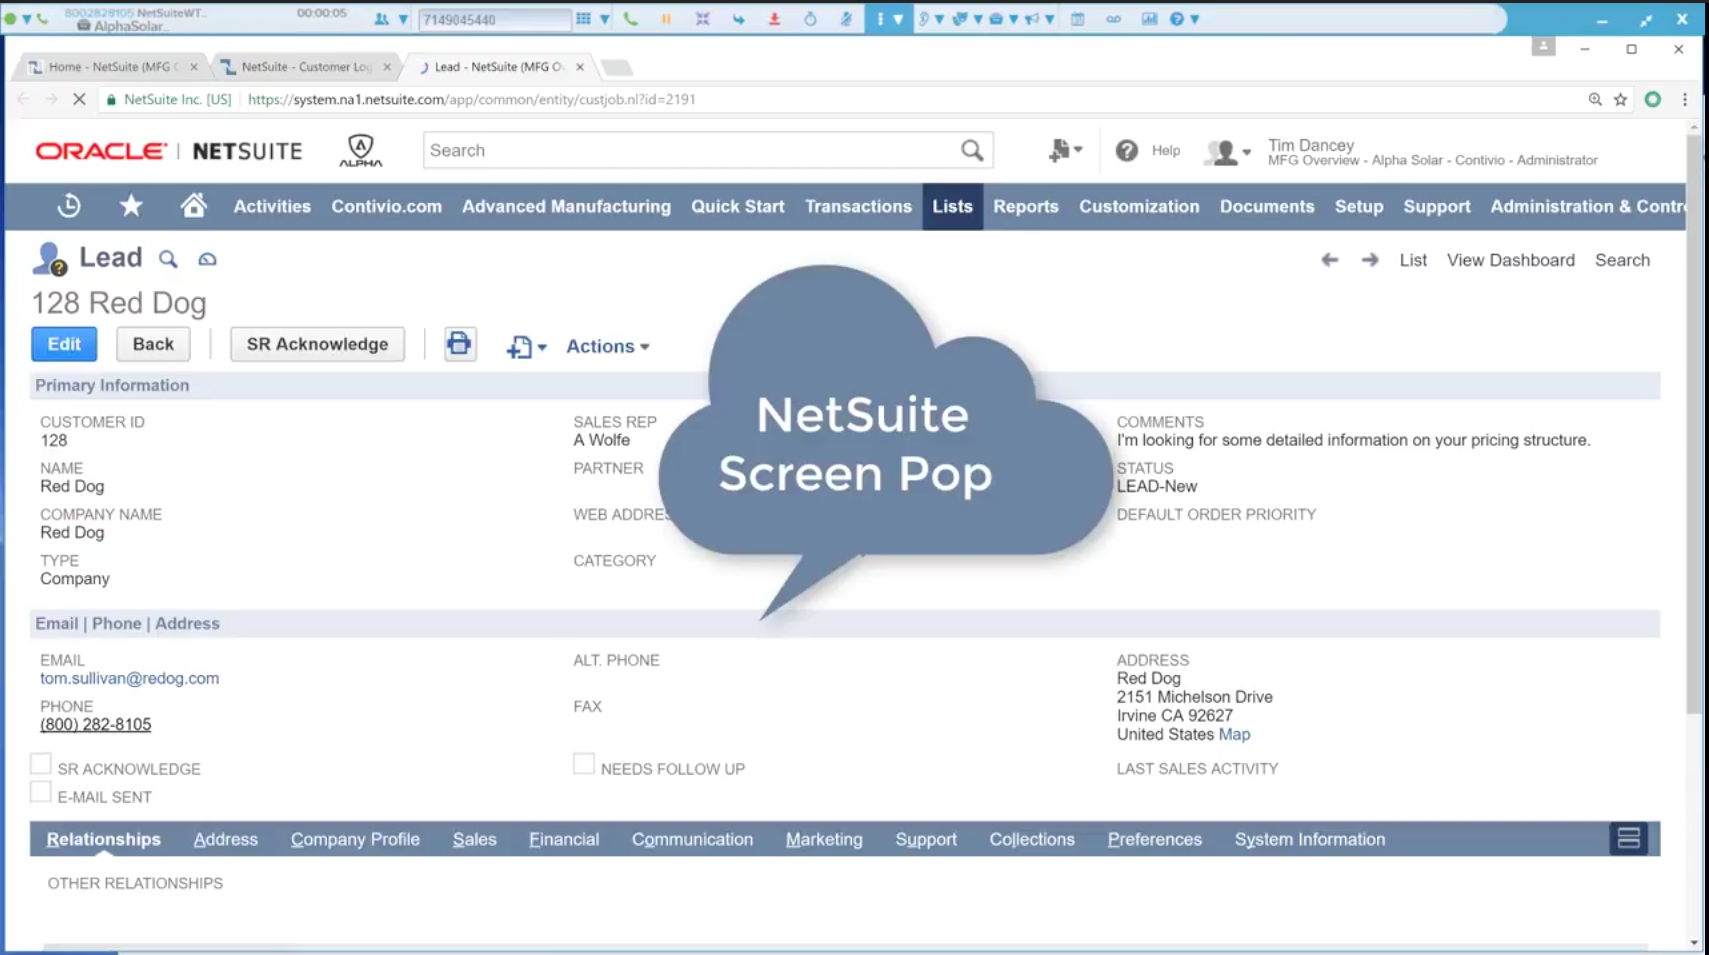 NetSuite-ScreenPop.png